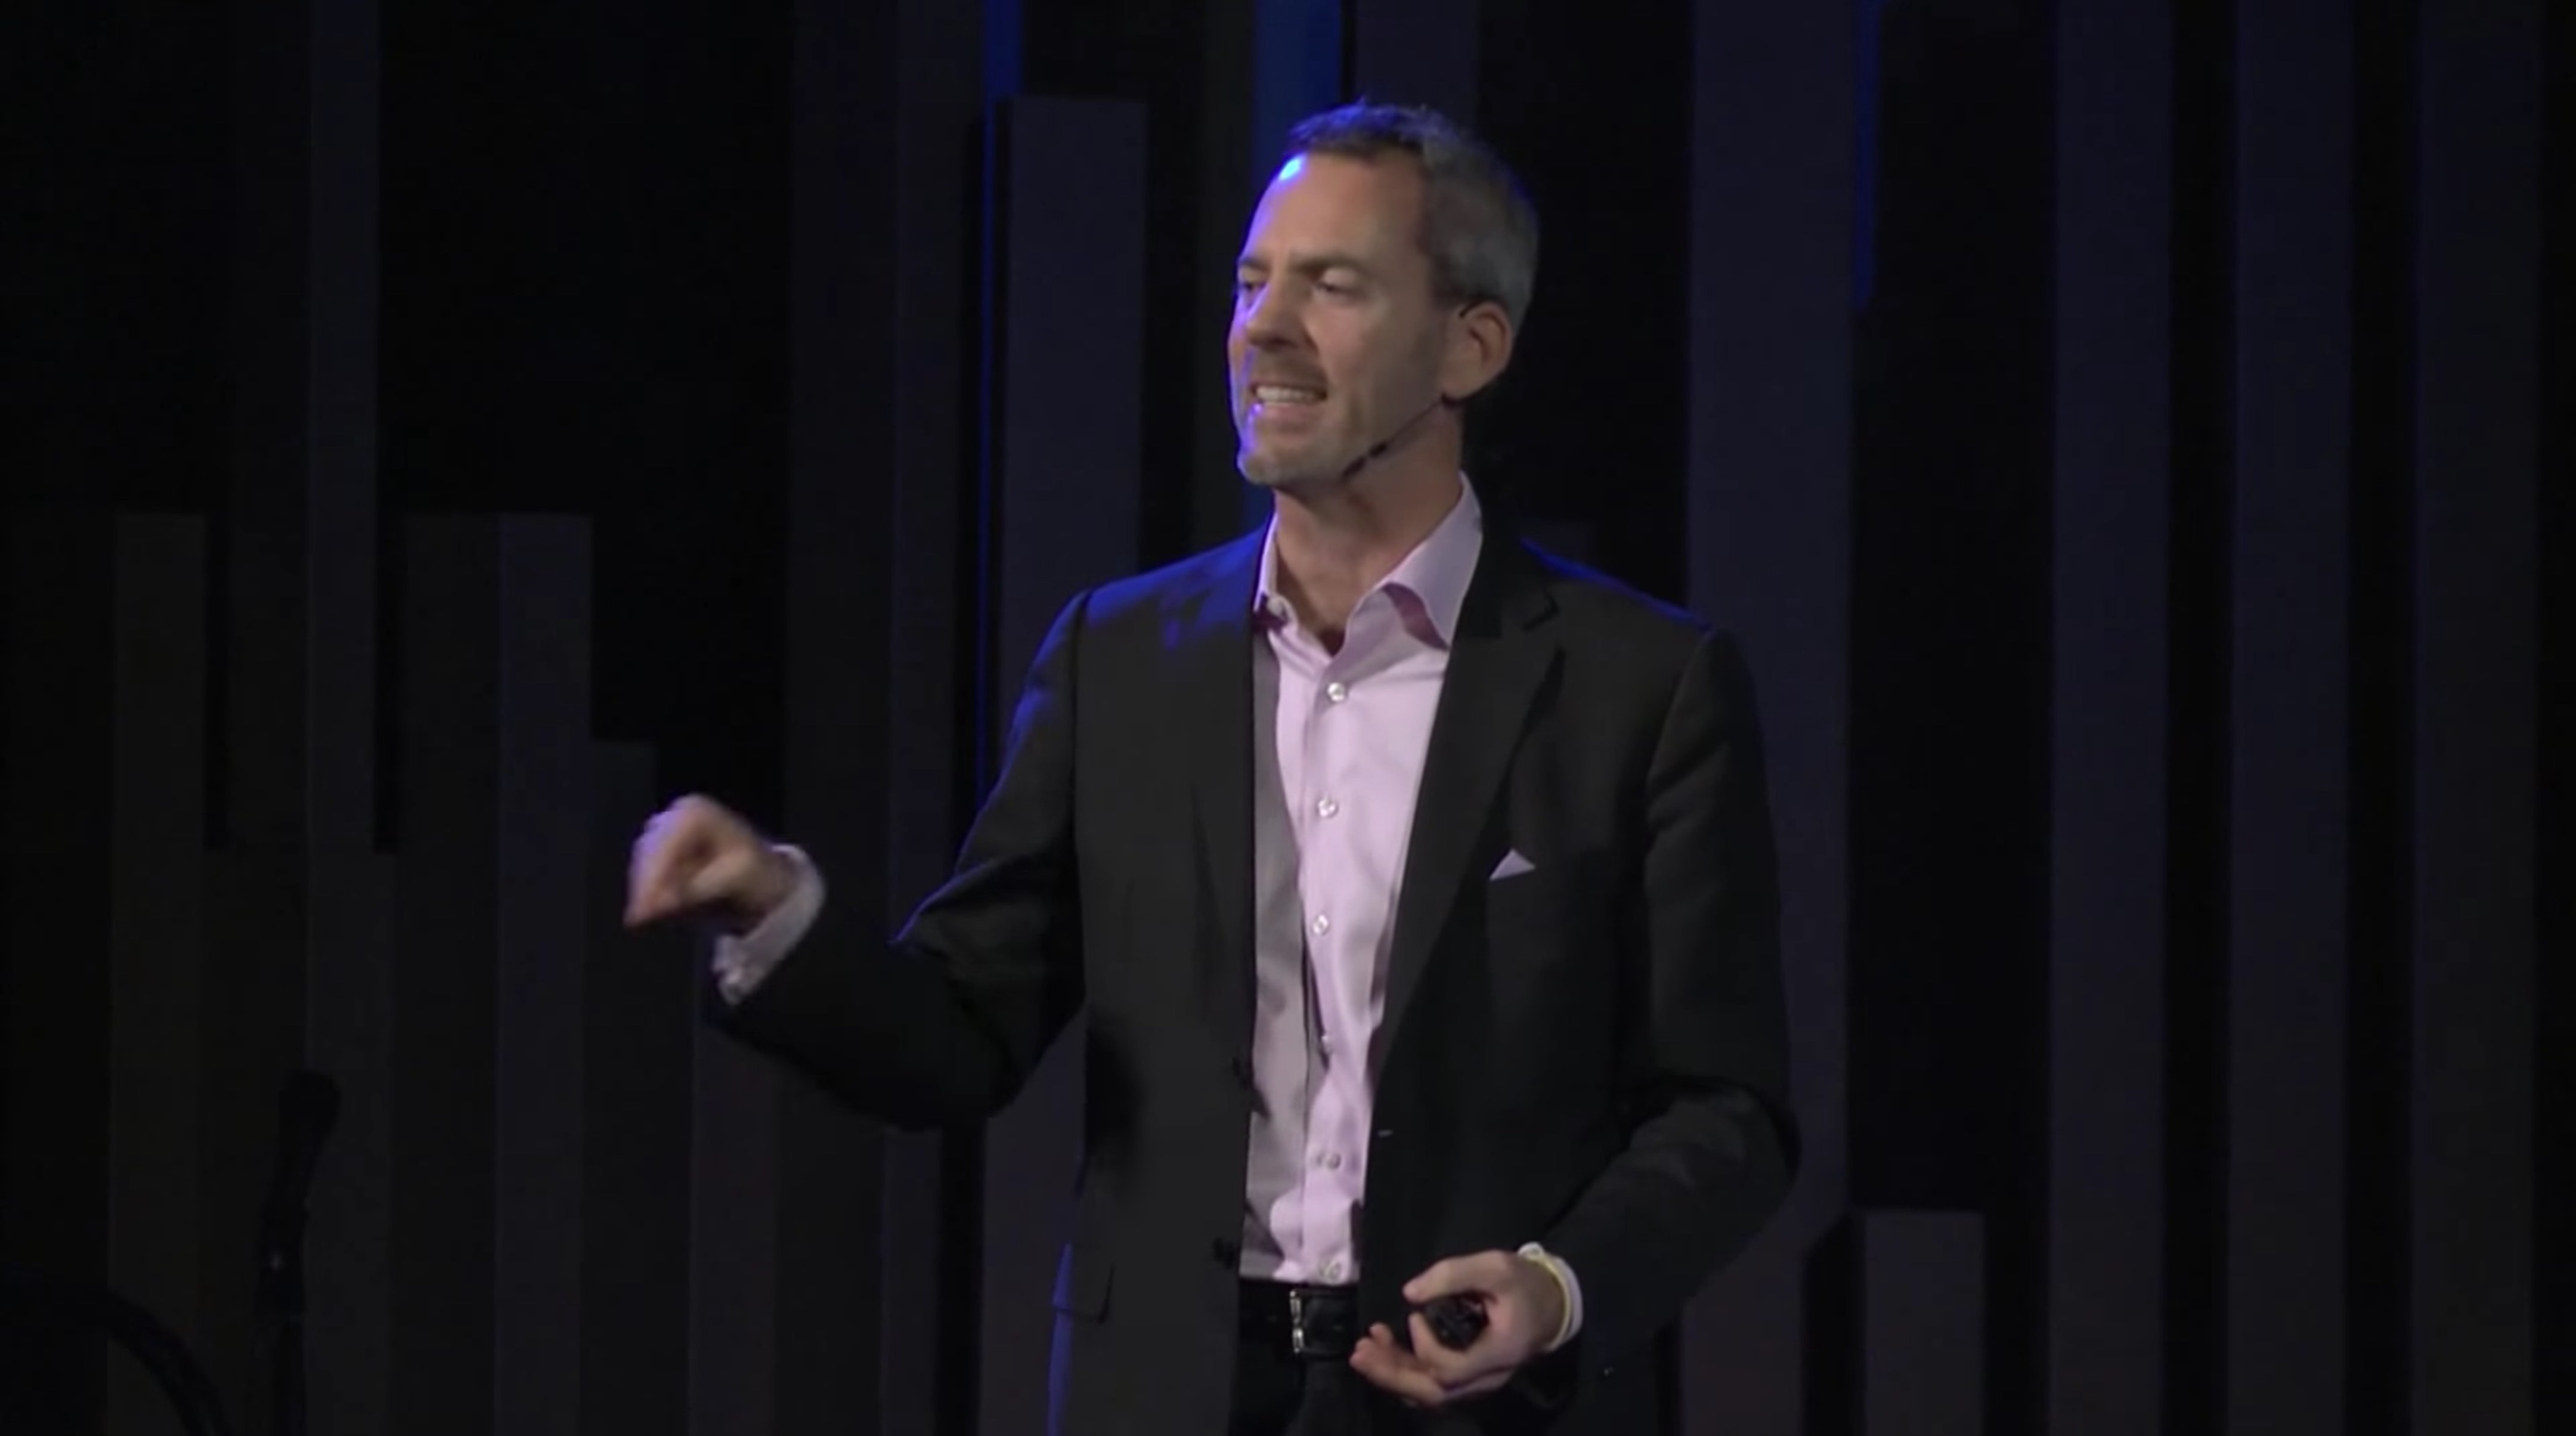 Tumlin speaking at a TEDx talk in Sacramento in 2013.